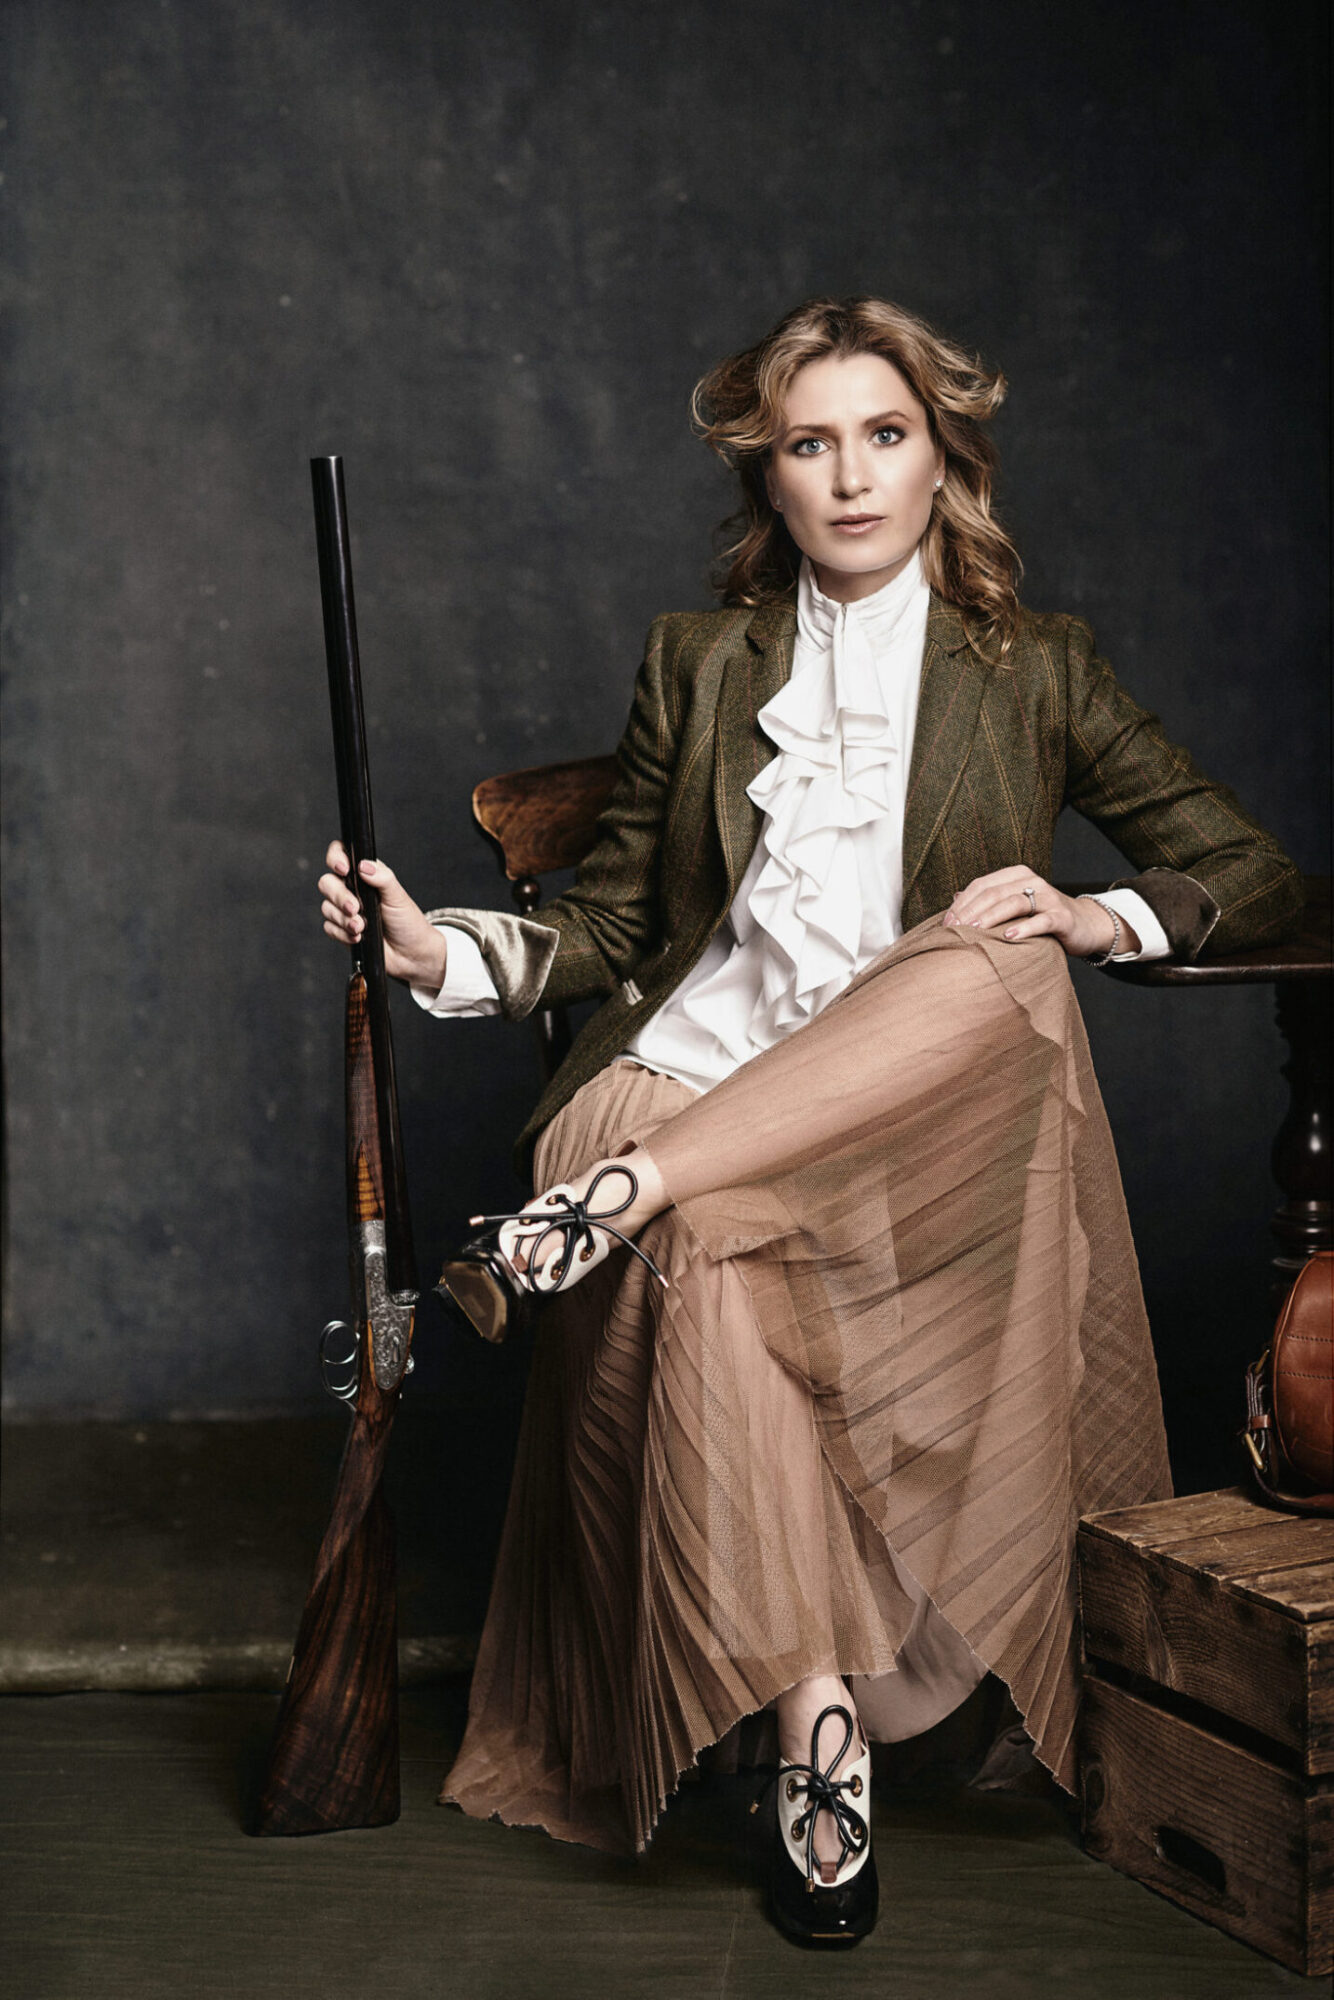 Gun: HOLLAND & HOLLAND, 'ROYAL DELUXE' SIDE-BY-SIDE SHOTGUN, Photo: GABOR SZANTAI, Model: ANASTASSIA VORONTCOVA, Makeup: TATIANA DOROGAYA, Hair: JENYA GRIBOV, Style: SHERRY WALKER